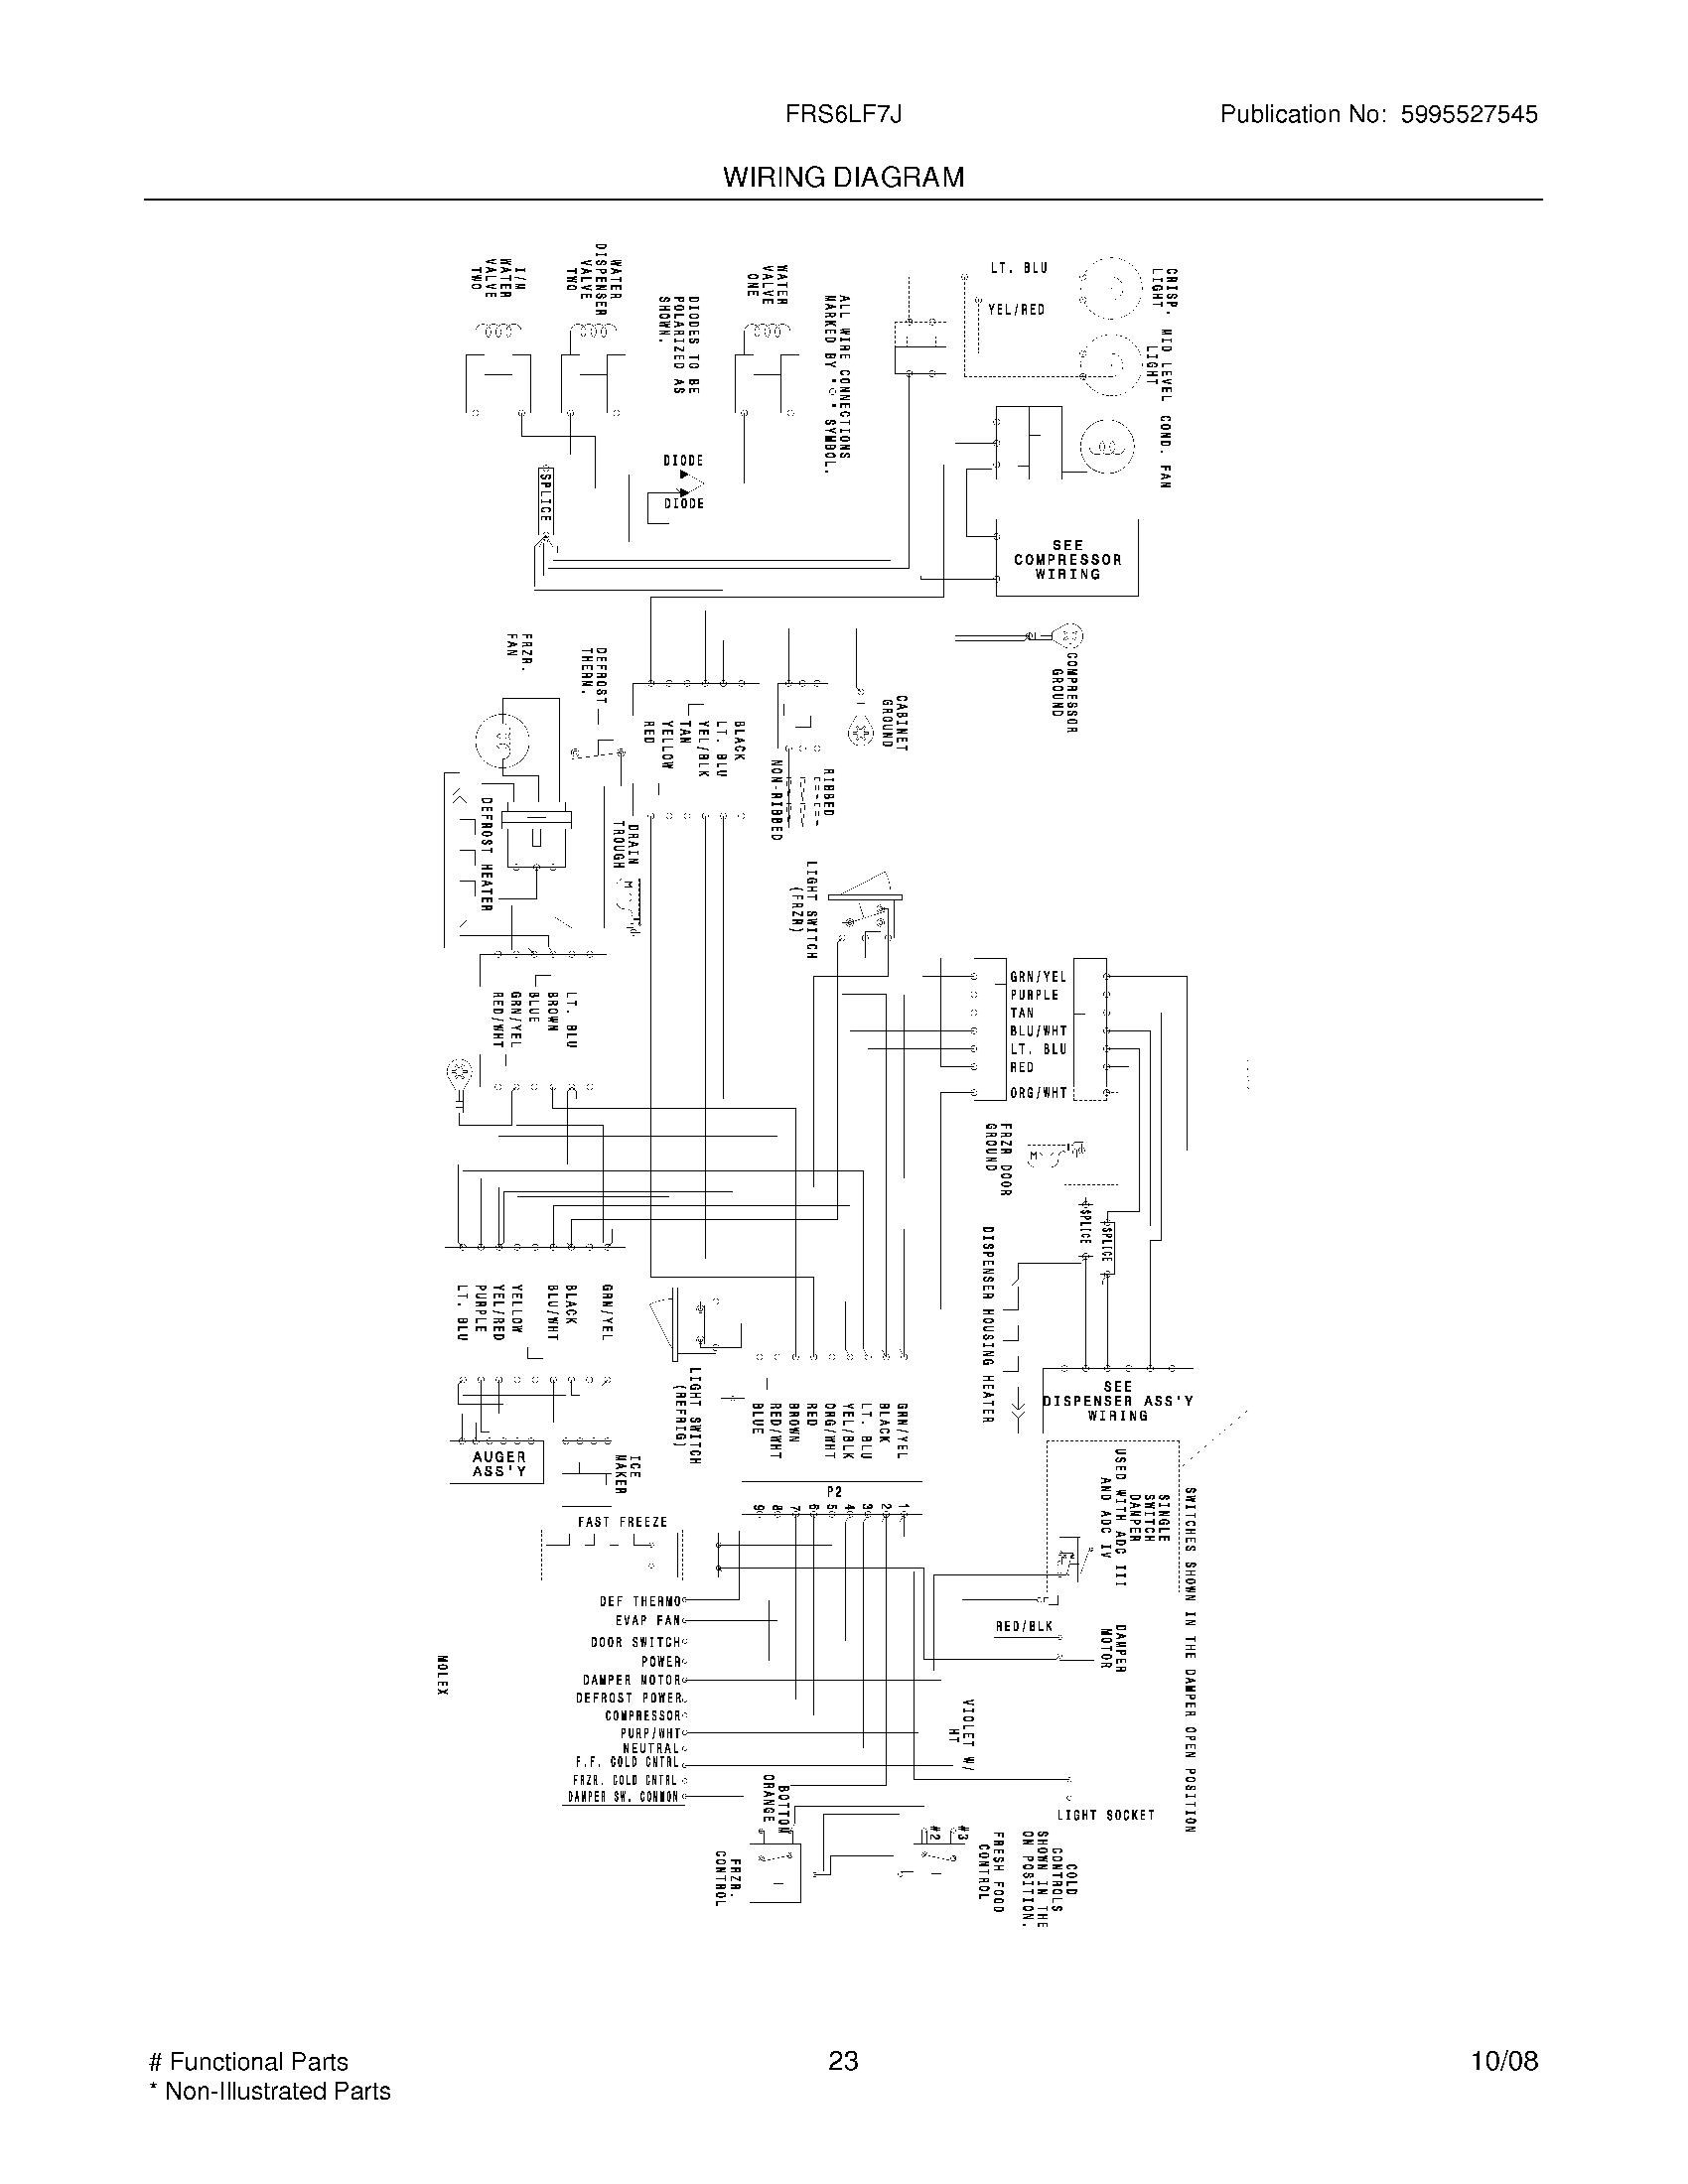 Daewoo refrigerator wiring diagram daewoo wiring diagrams instructions sanyo car radio wiring diagram daewoo refrigerator wiring diagram at wwweeautoresponder asfbconference2016 Image collections